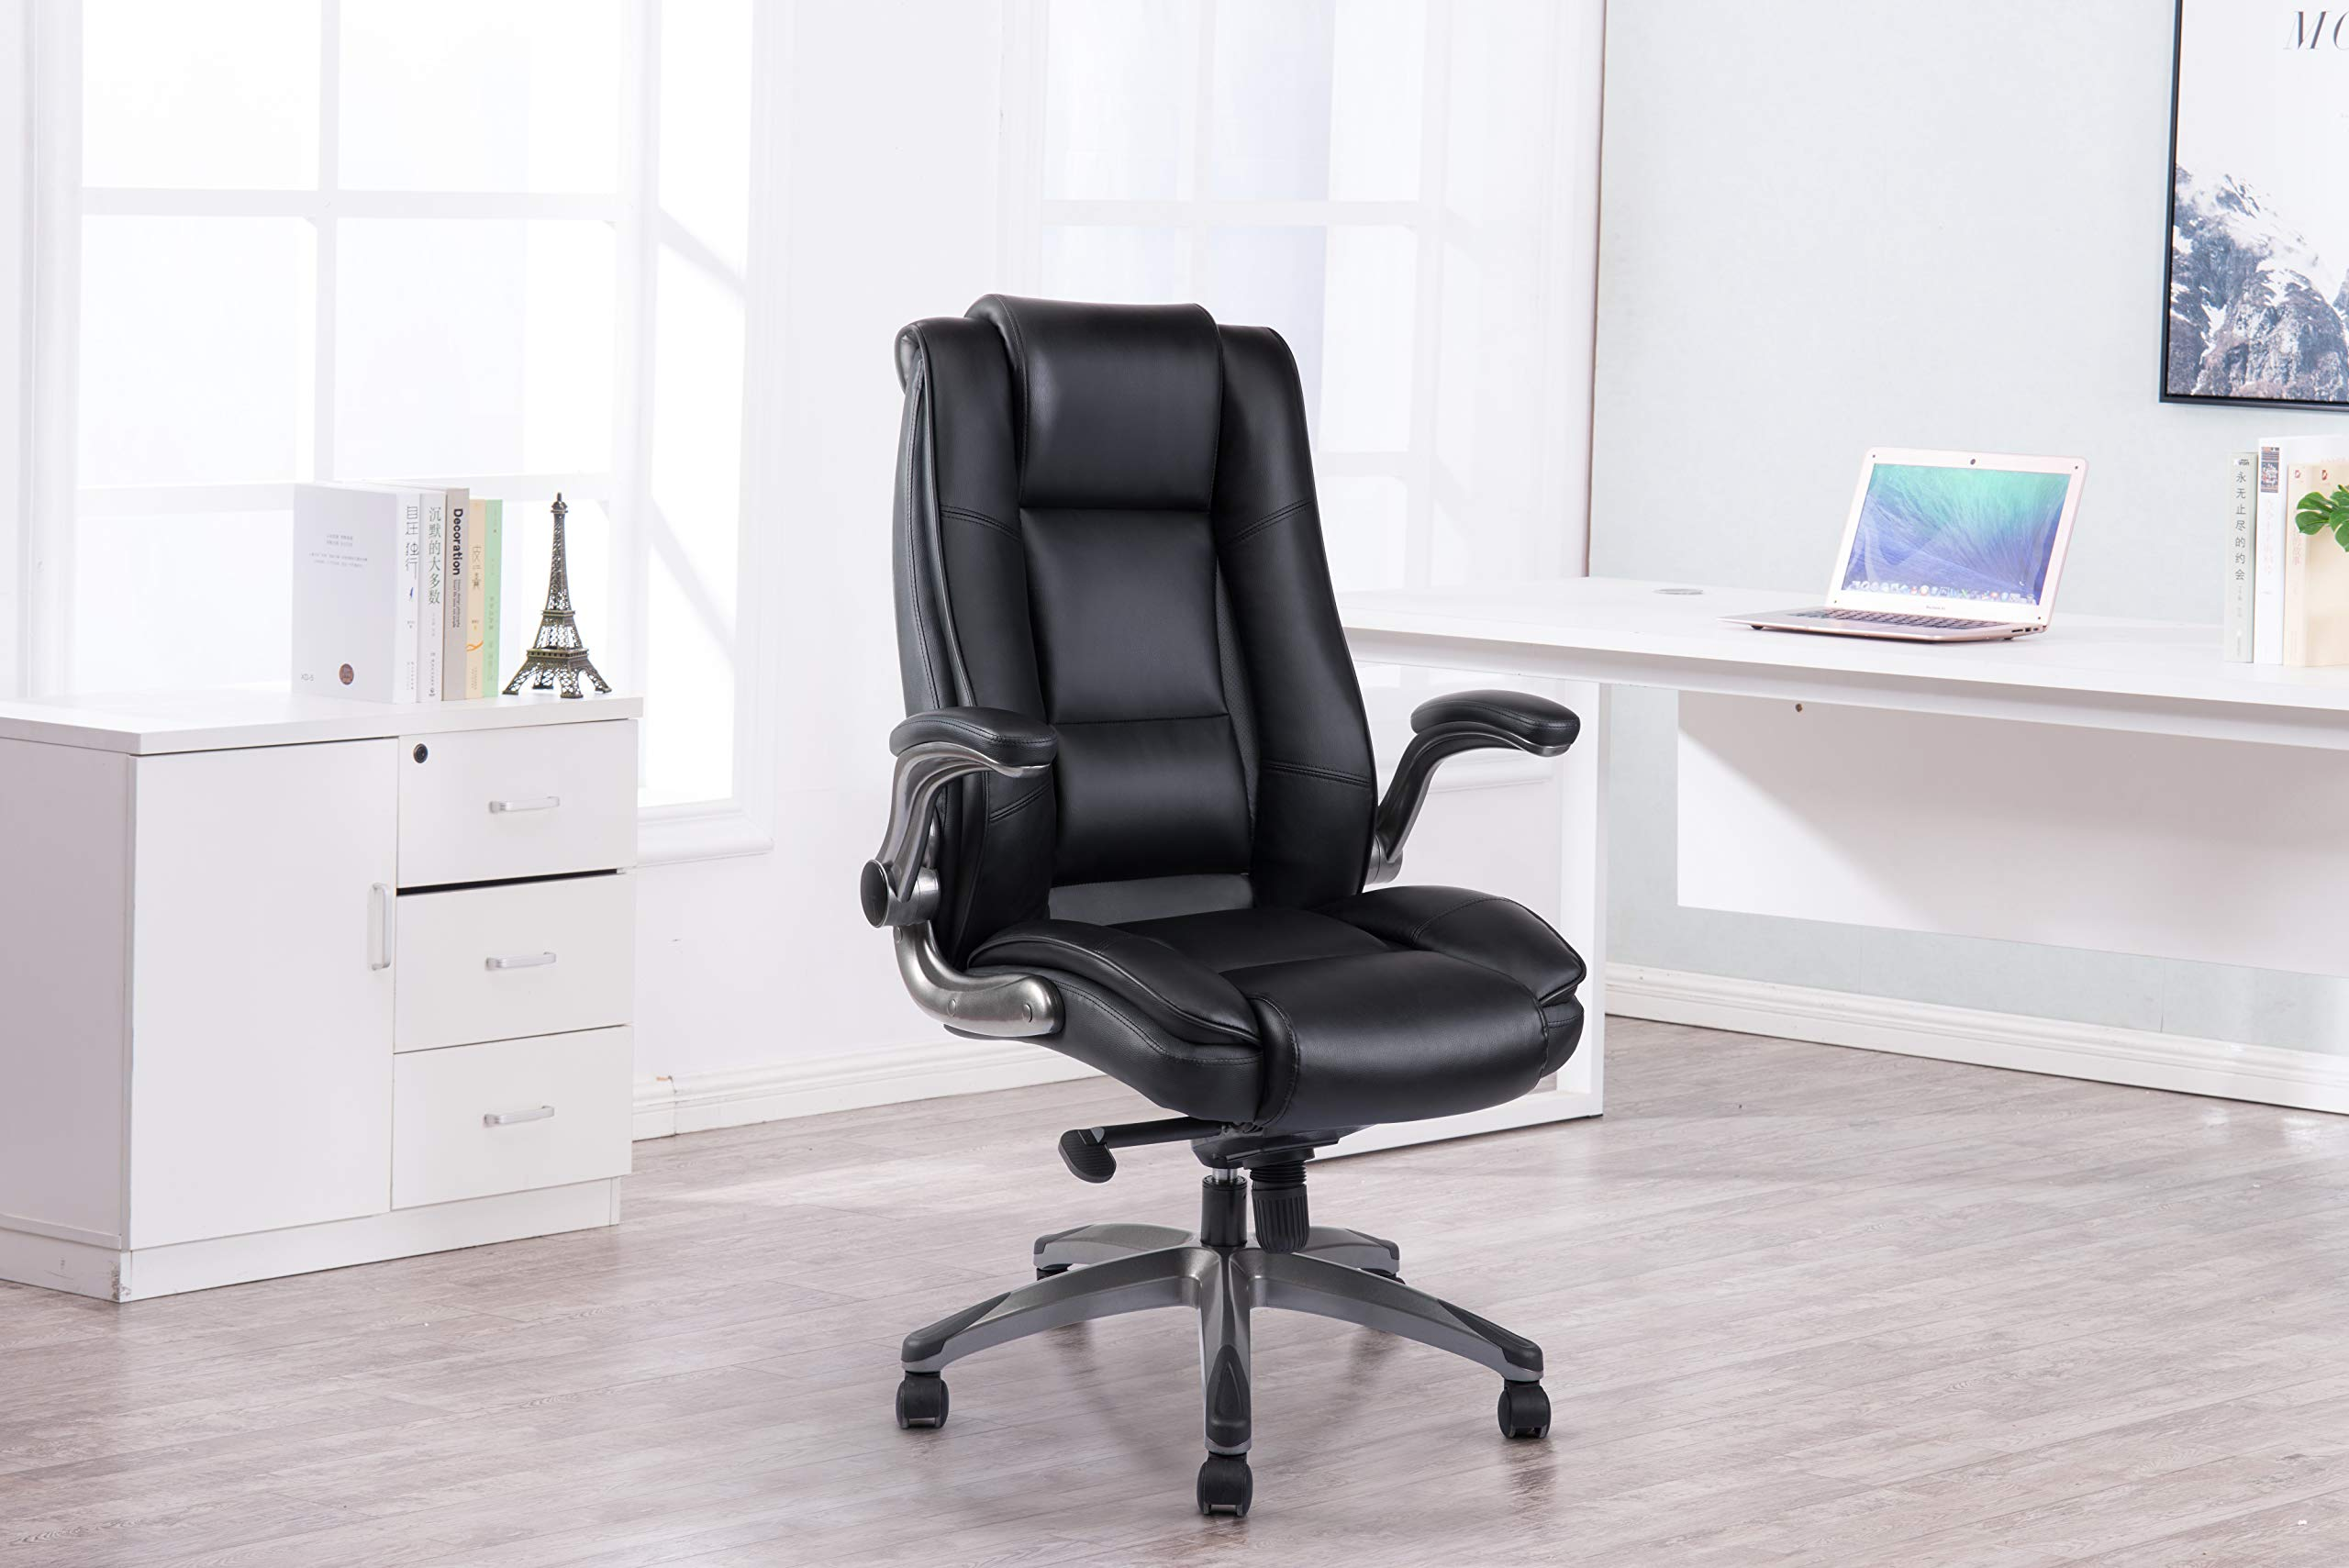 VANBOW High Back Leather Office Chair - Adjustable Tilt Angle and Flip-up Arms Executive Computer Desk Chair, Thick Padding for Comfort and Ergonomic Design for Lumbar Support, Black by VANBOW (Image #7)